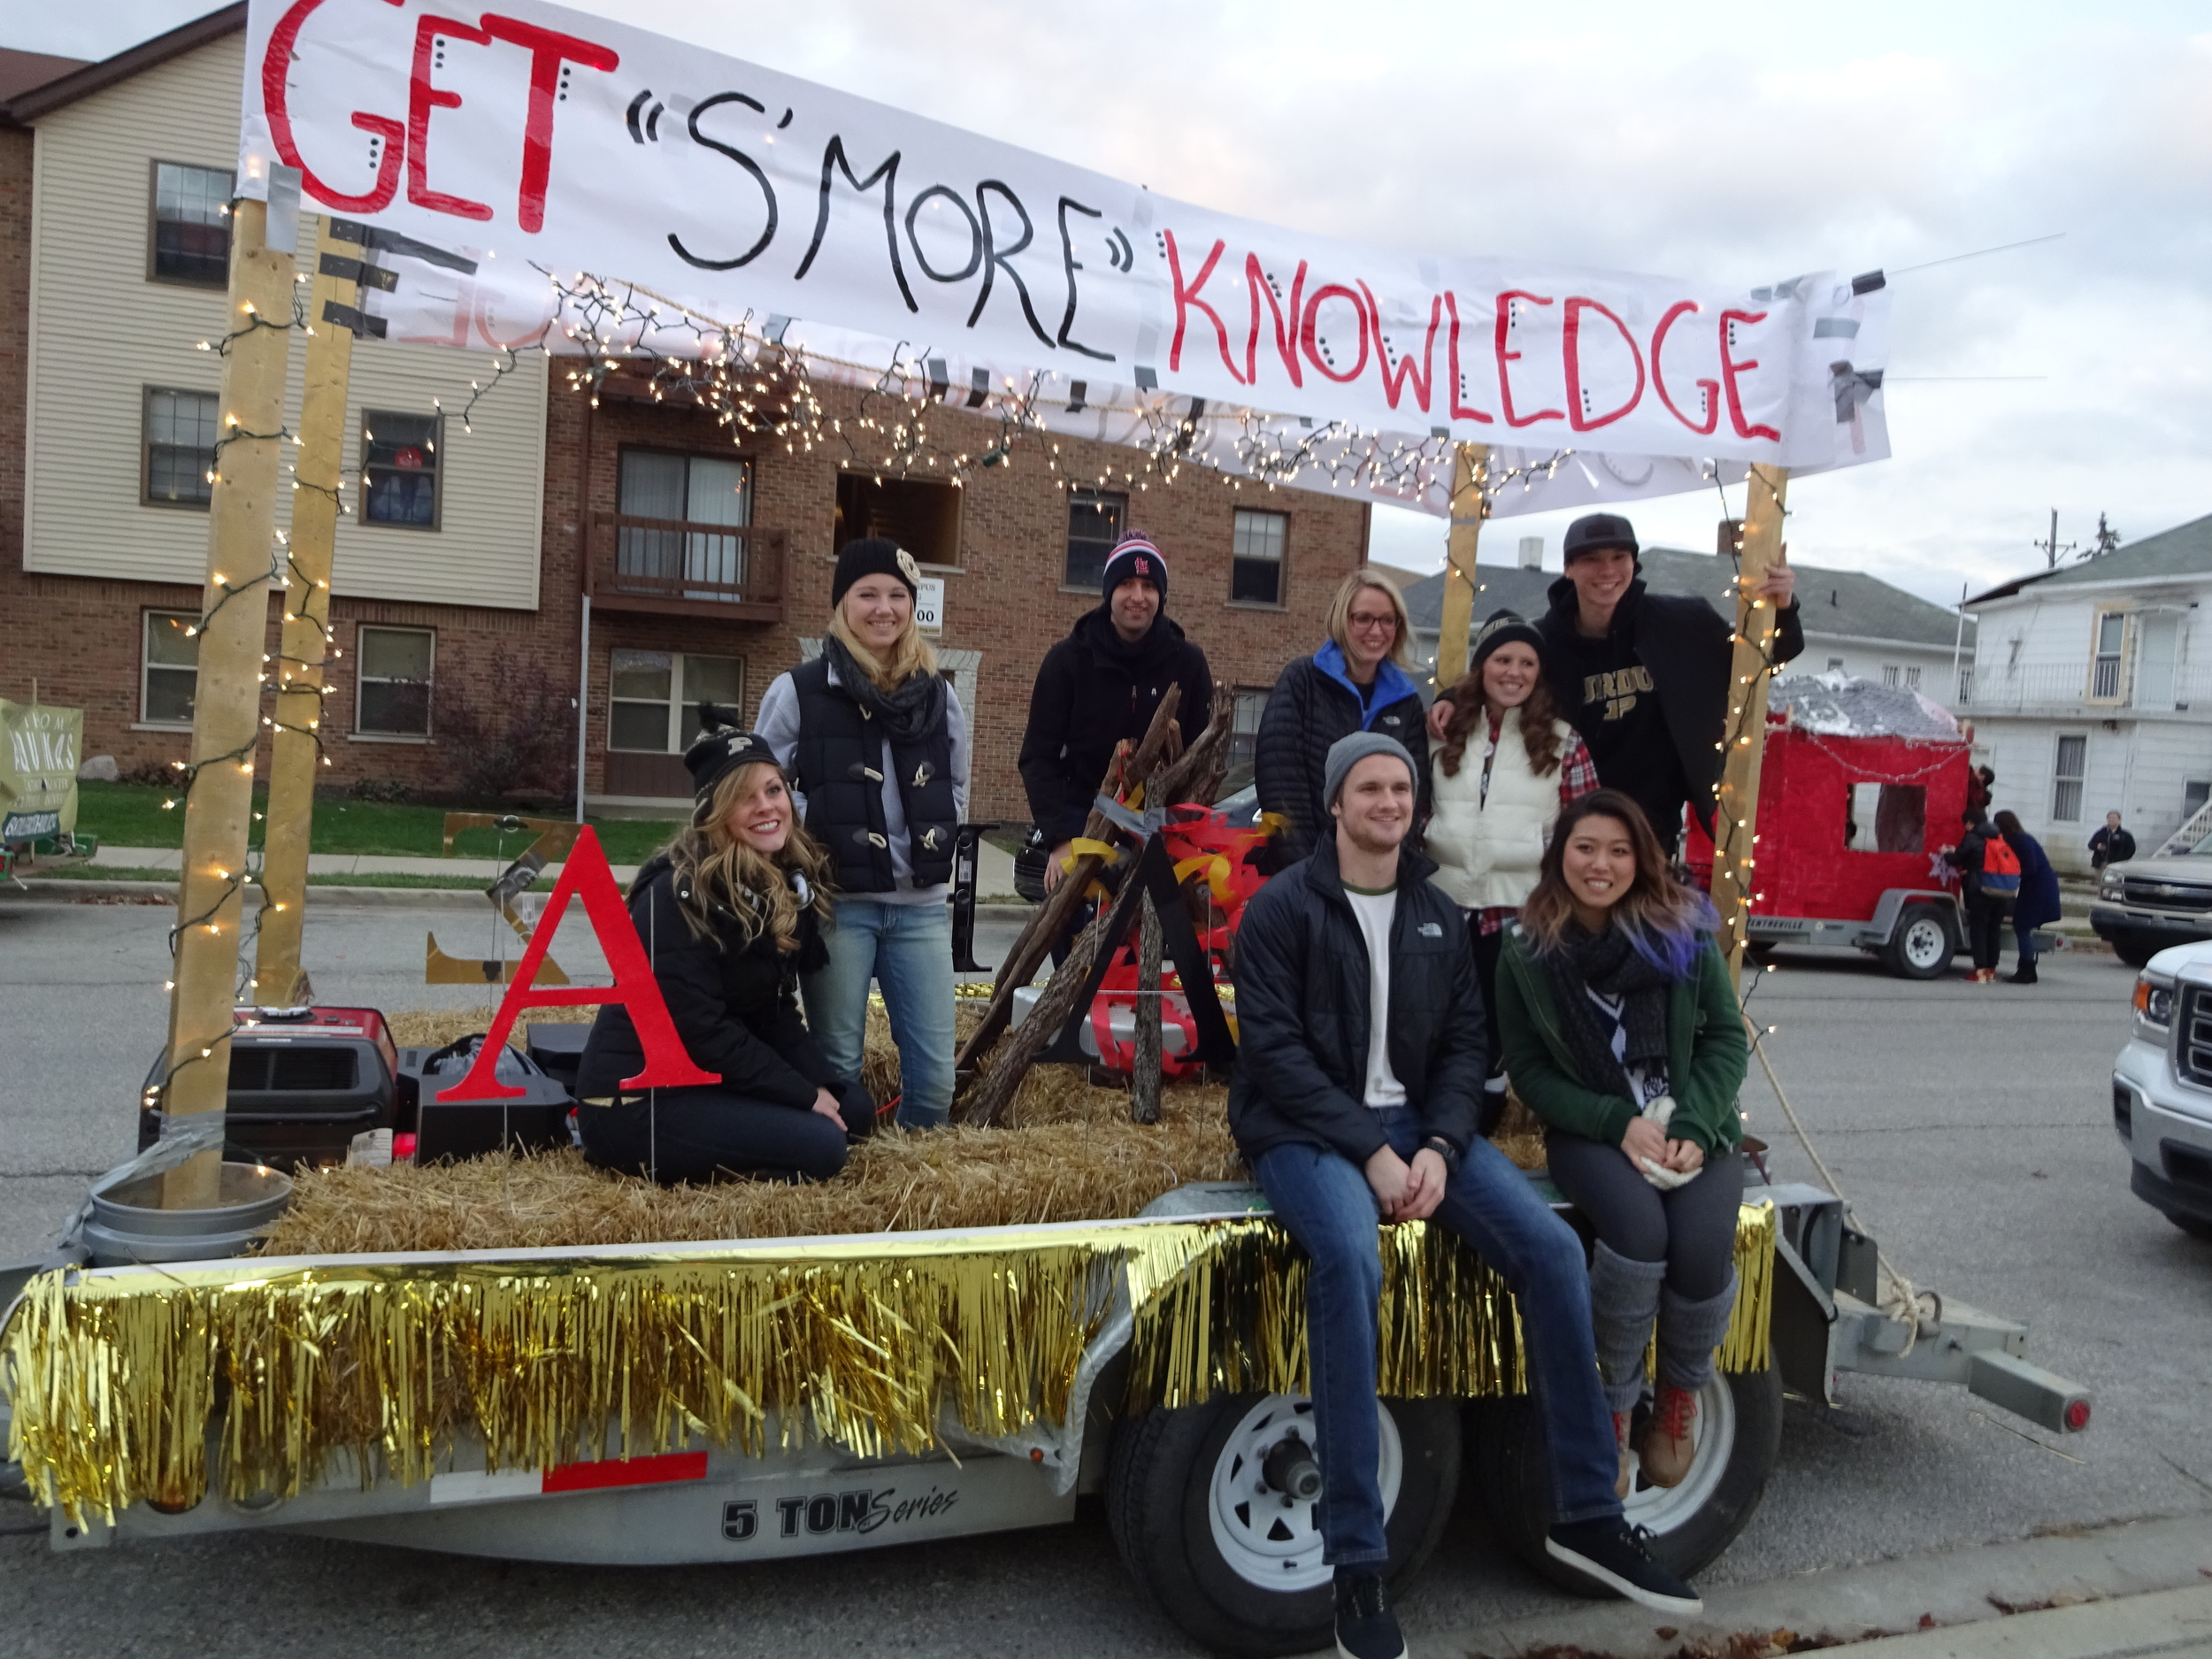 purdue university's alpha lambda delta homecoming float (and first place winner!)